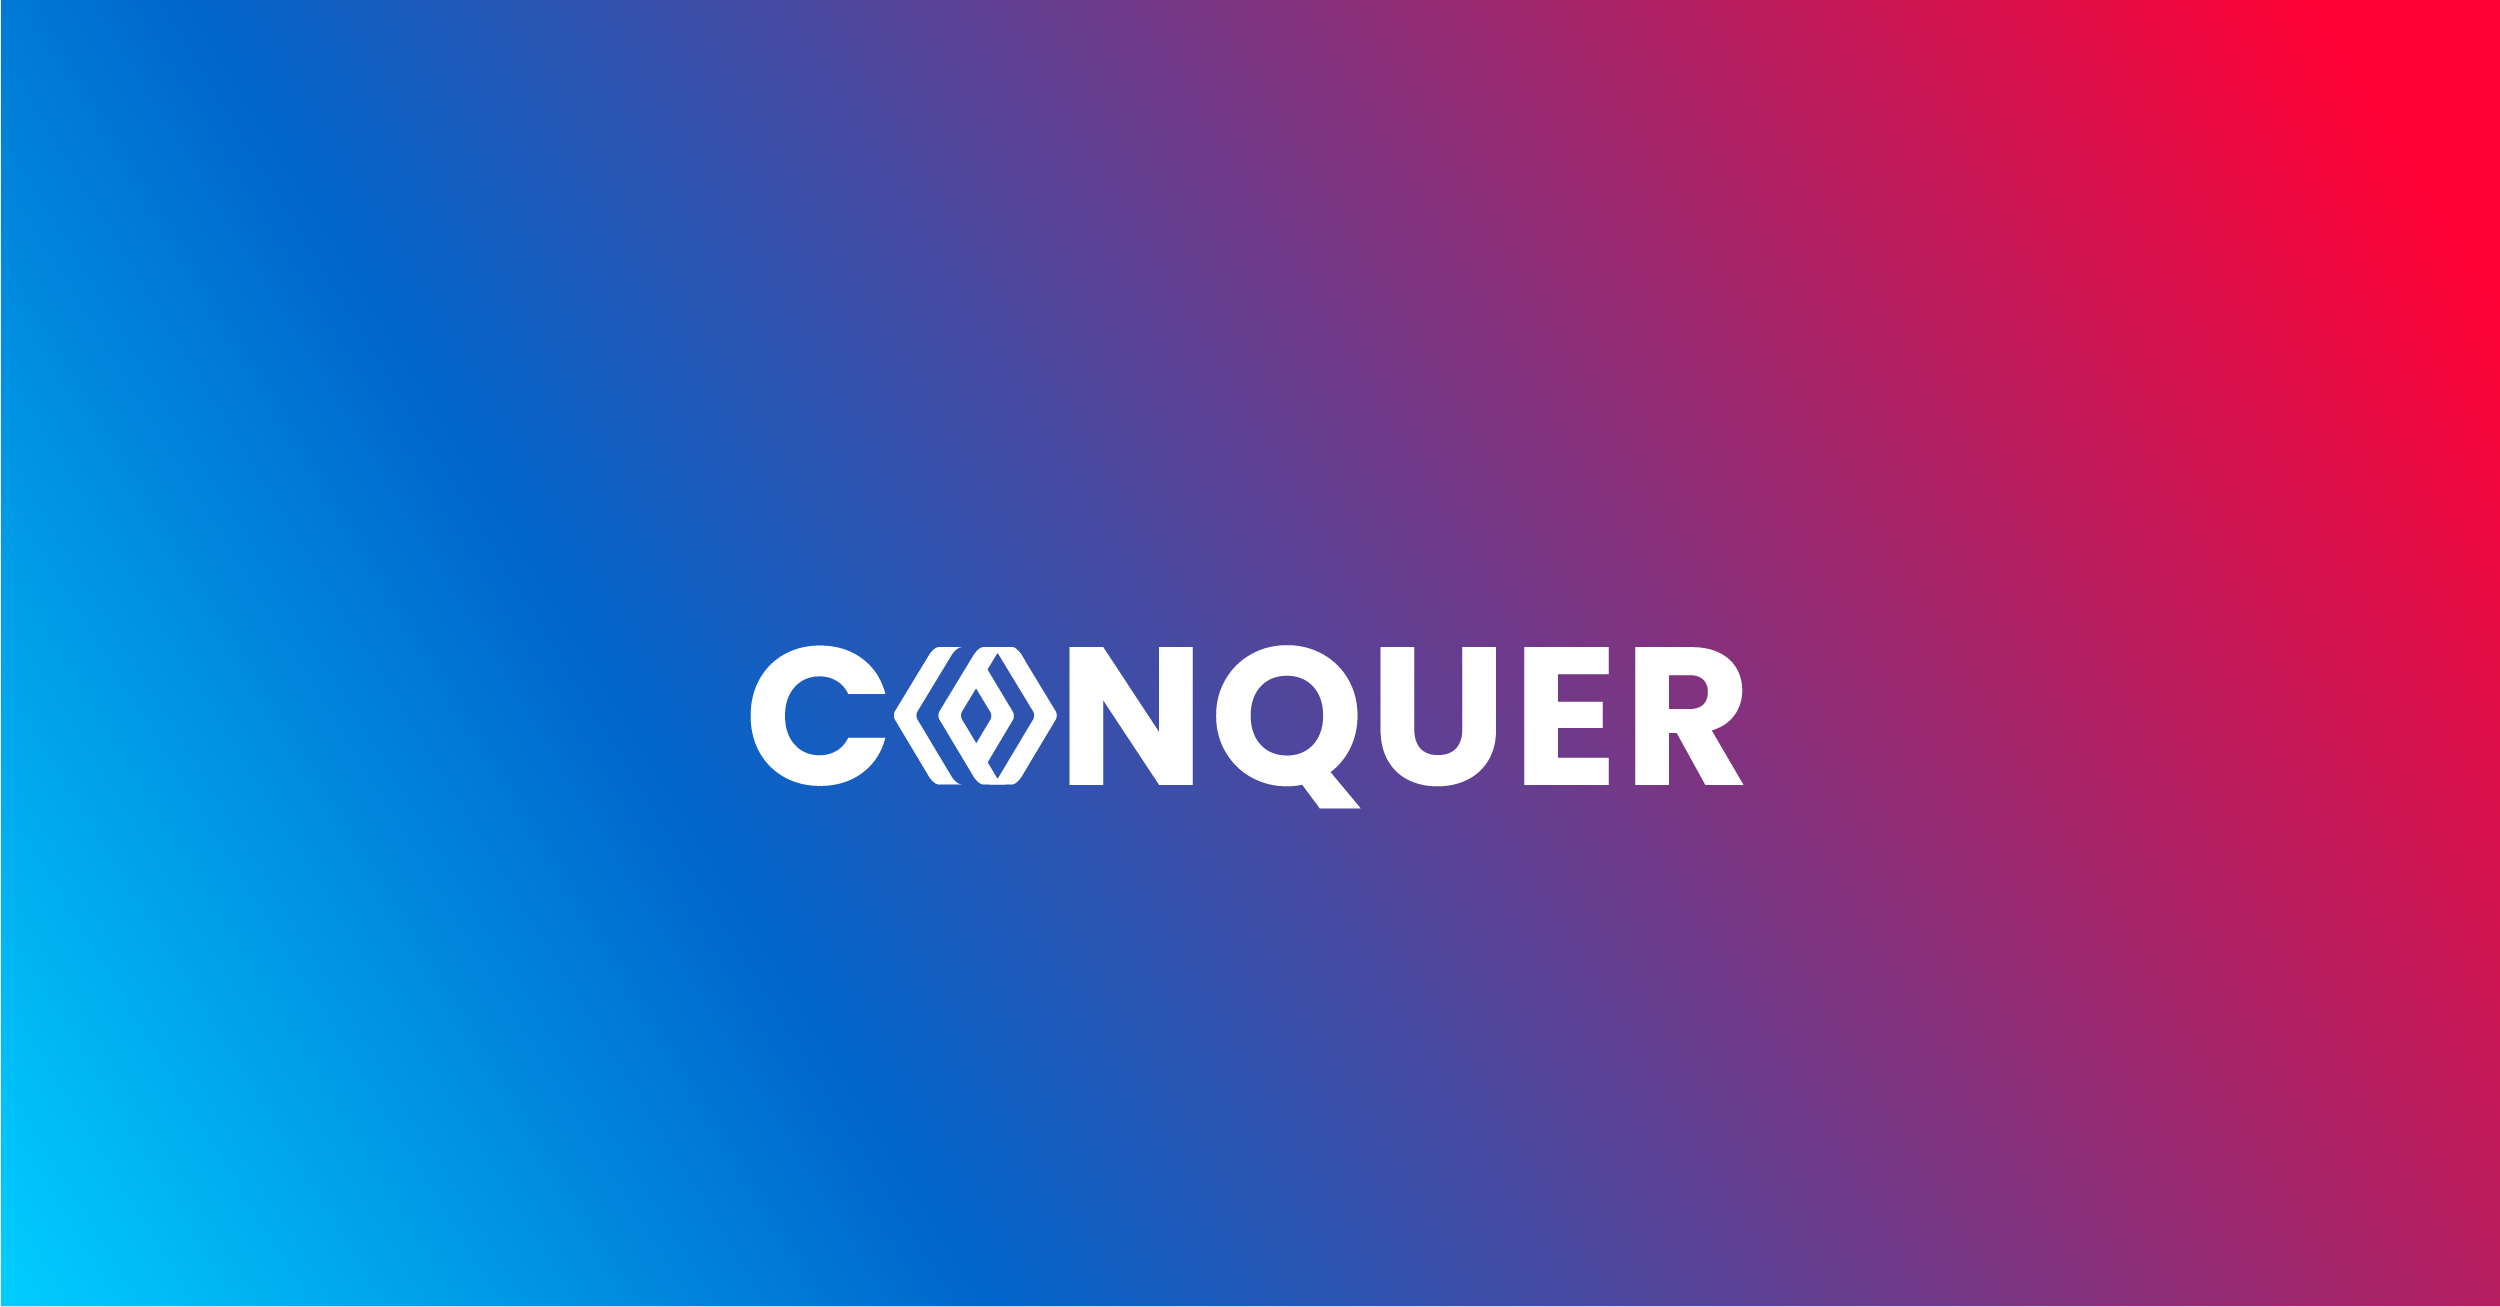 Meet Conquer, the #1 Revenue Engagement solution for Salesforce and Microsoft Dynamics 365 CRMs.